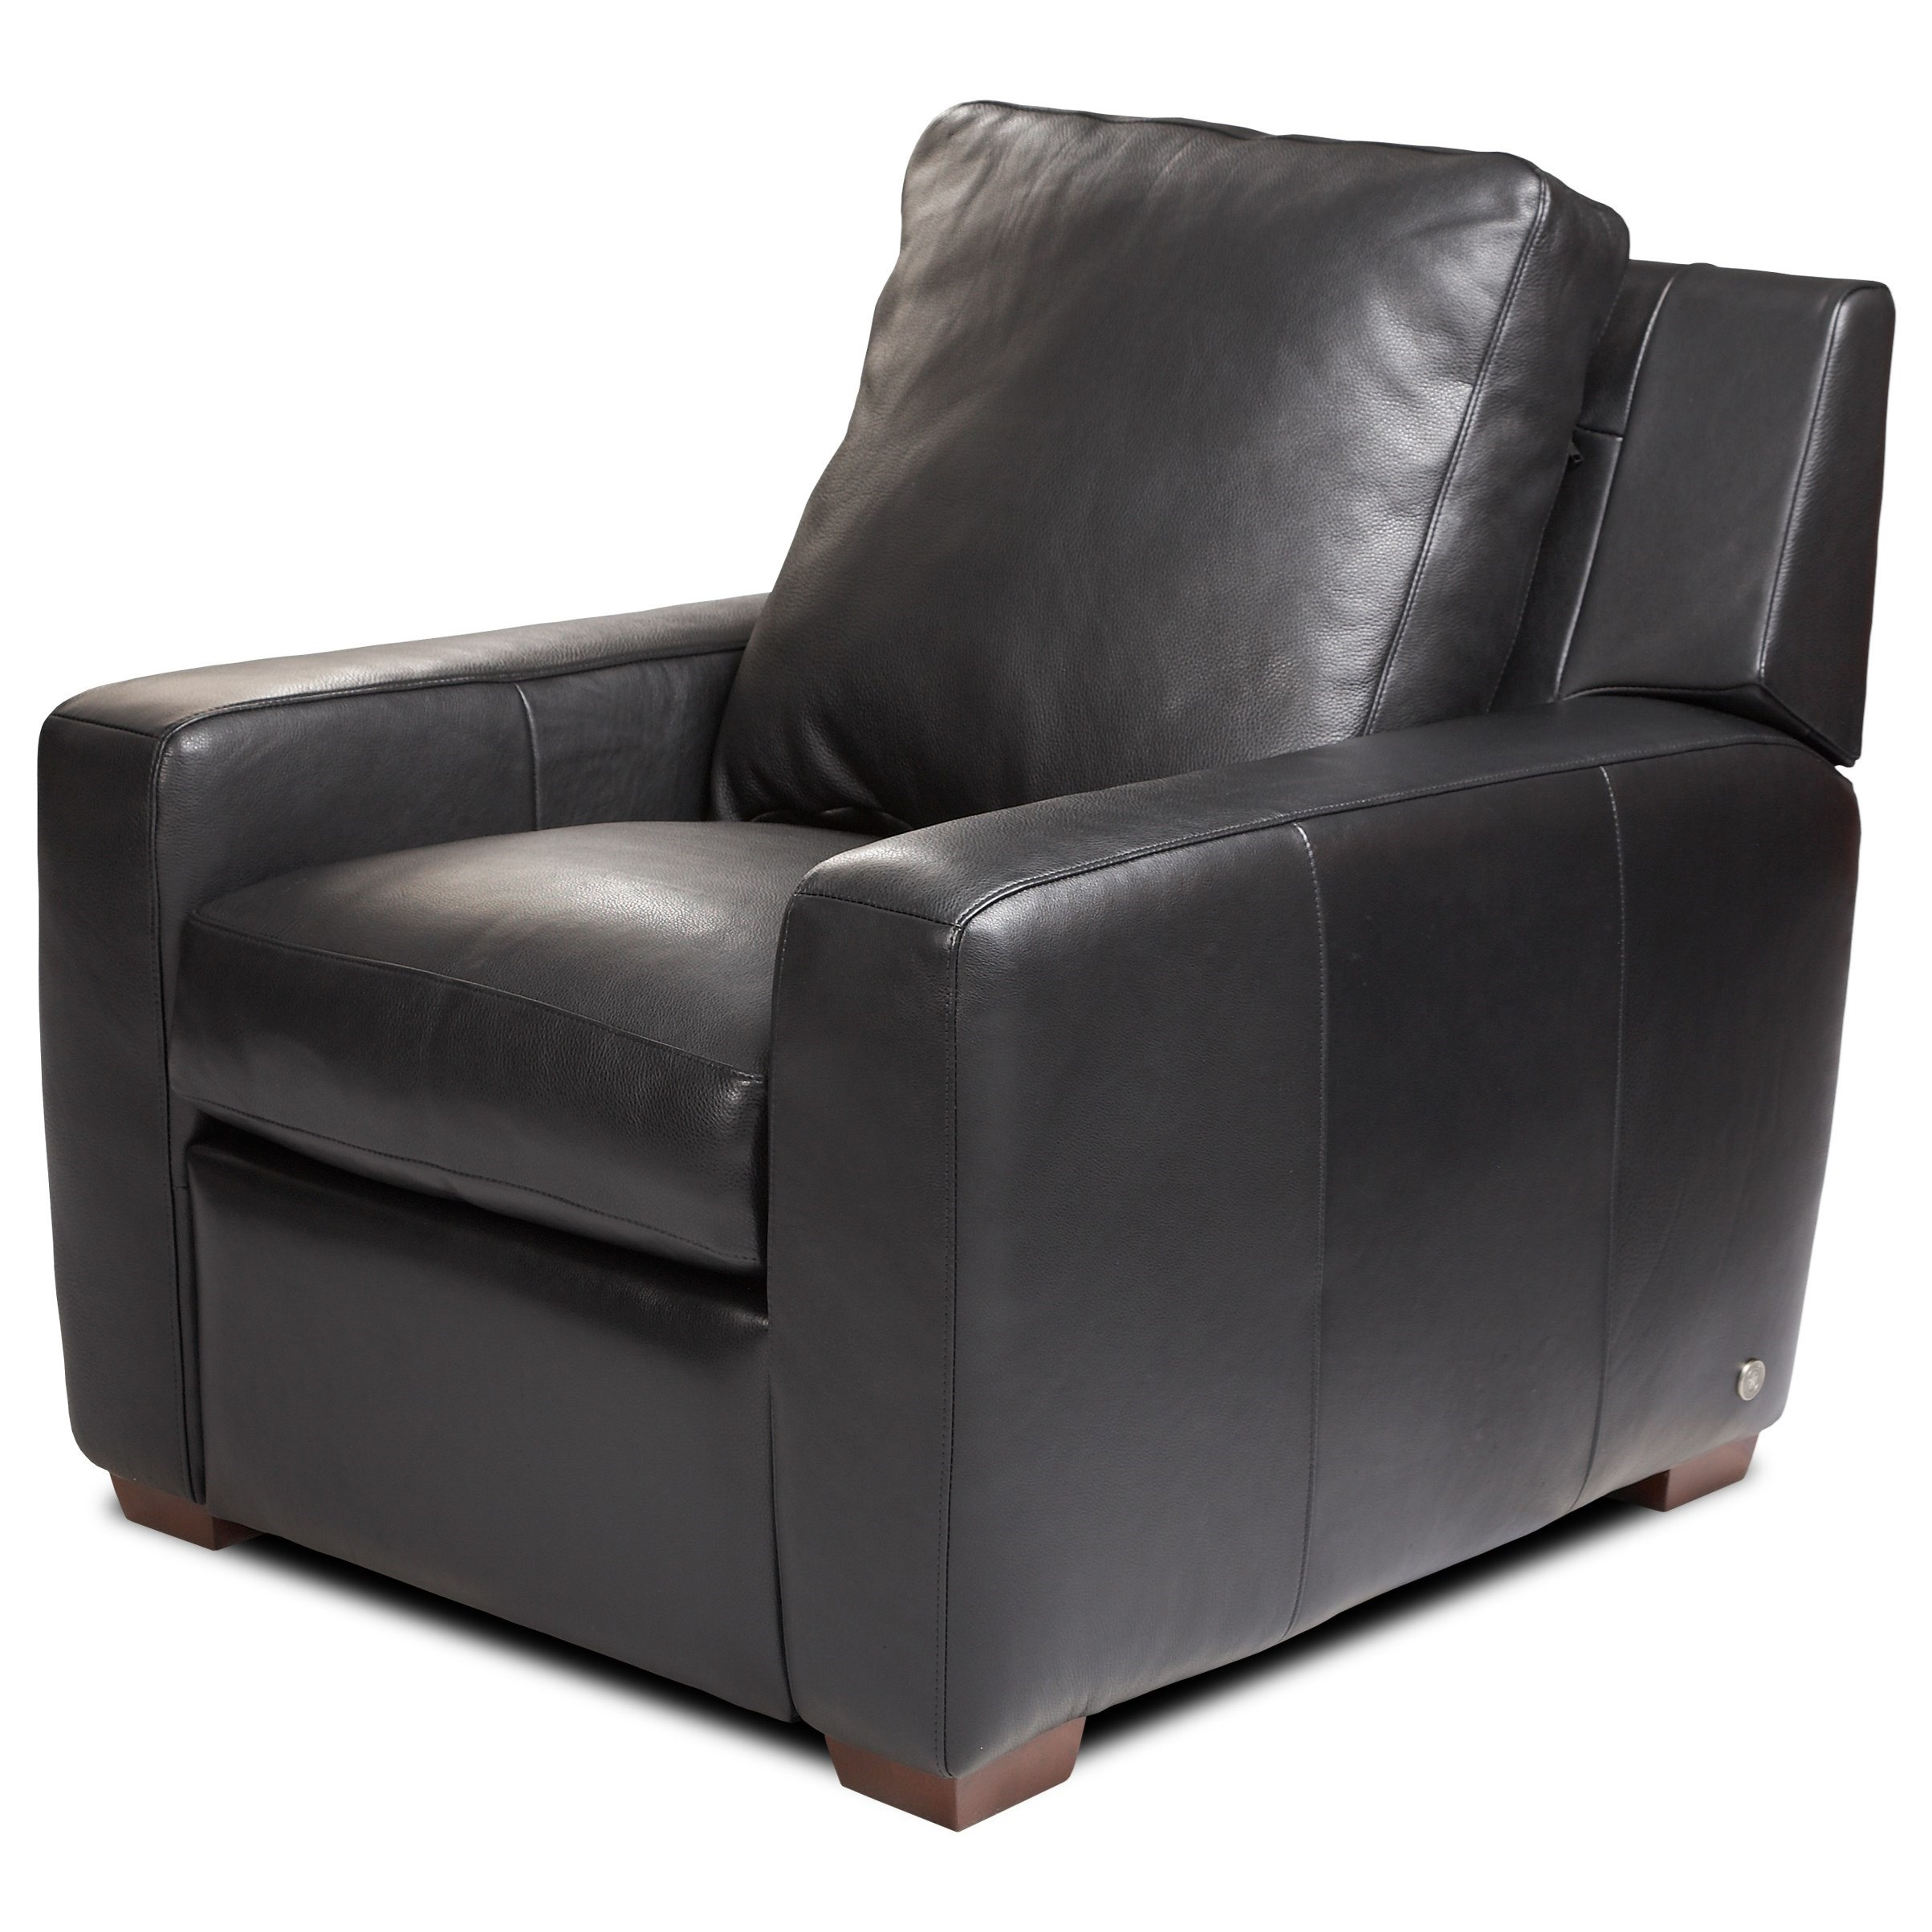 Lisben High Leg Recliner by American Leather at Malouf Furniture Co.